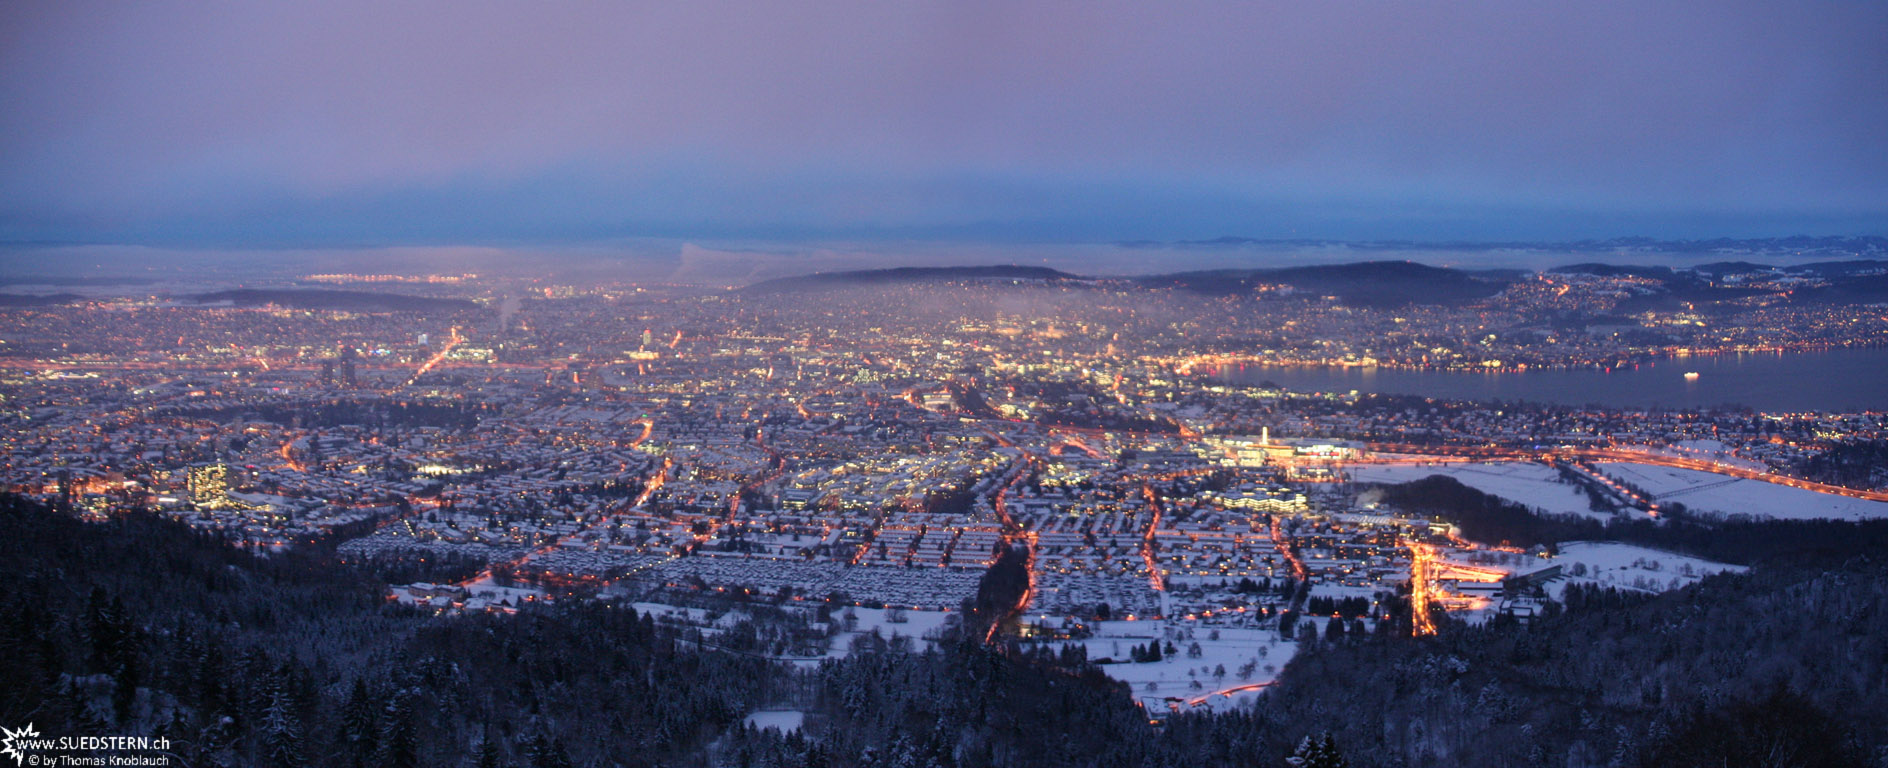 Panorama of Zuerich at the beginning of a winters night